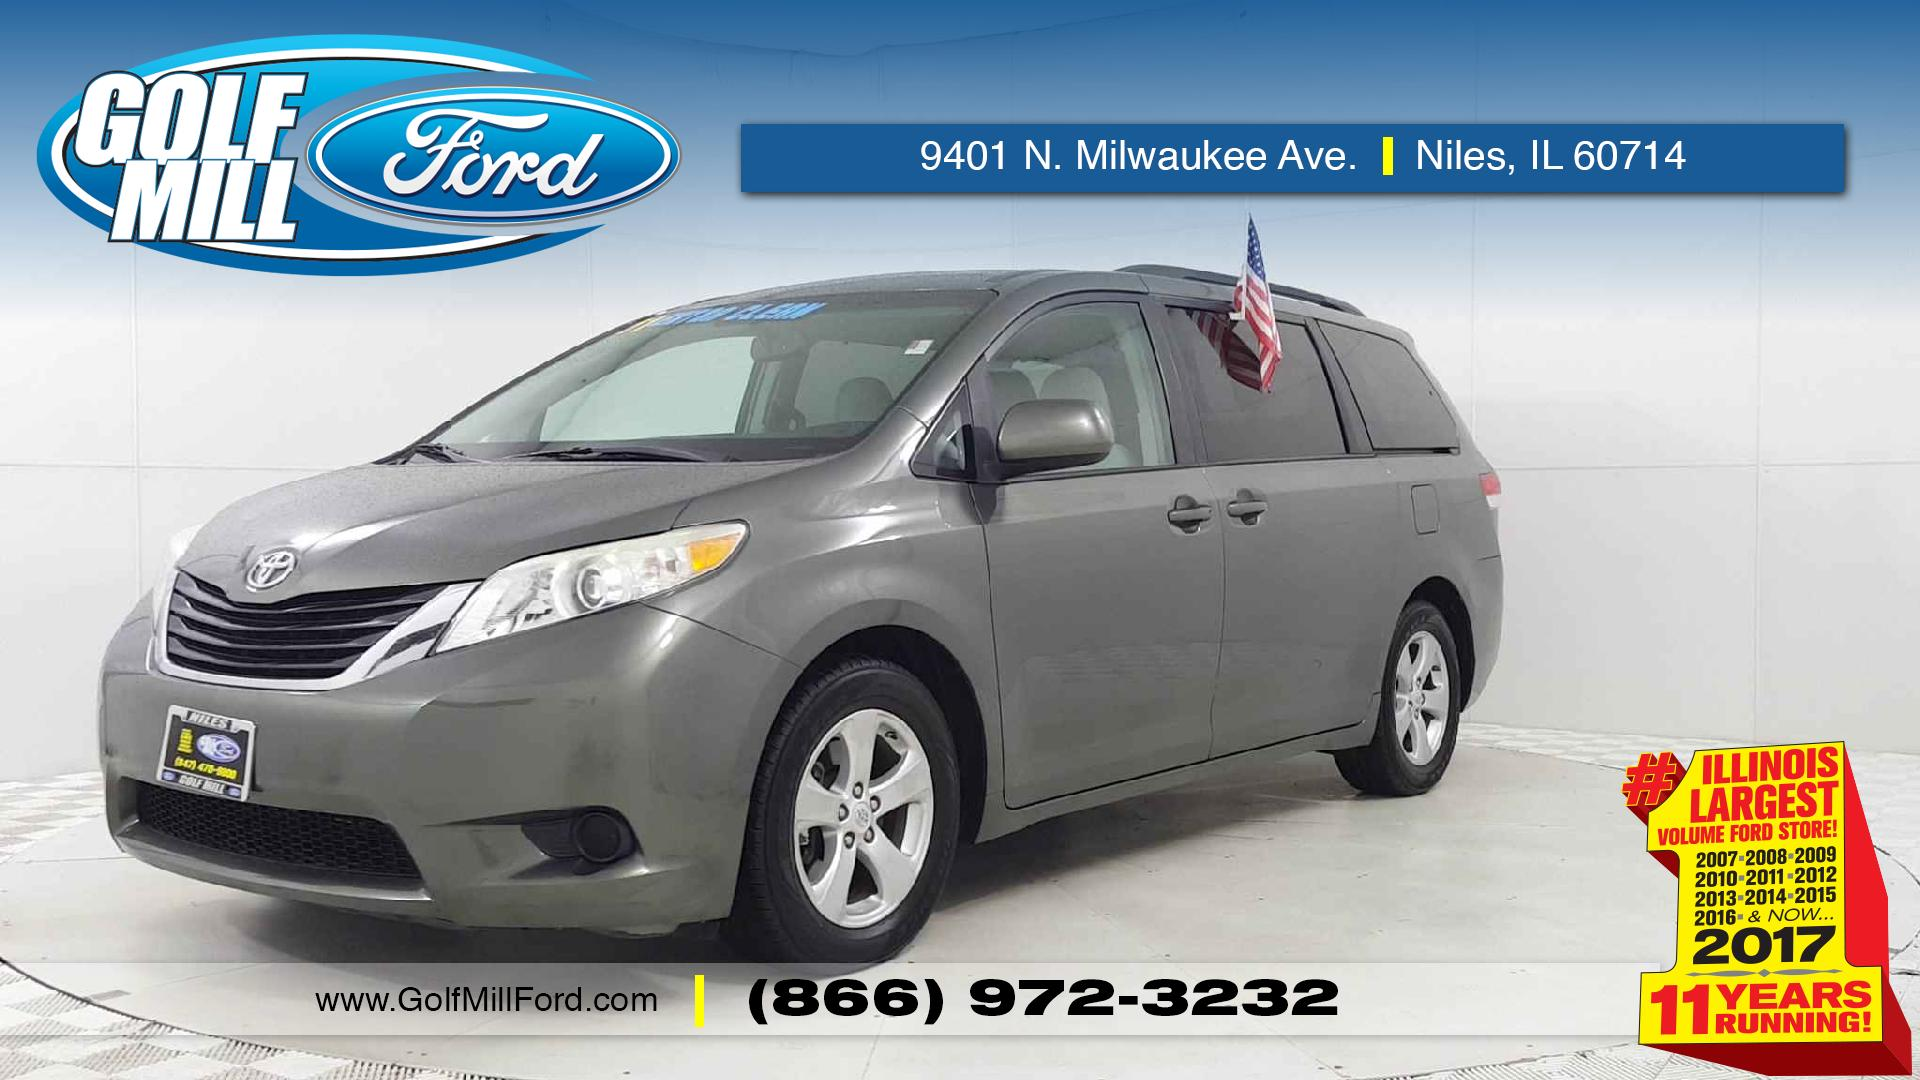 Toyota Sienna Service Manual: No Signal from Transmitter ID1